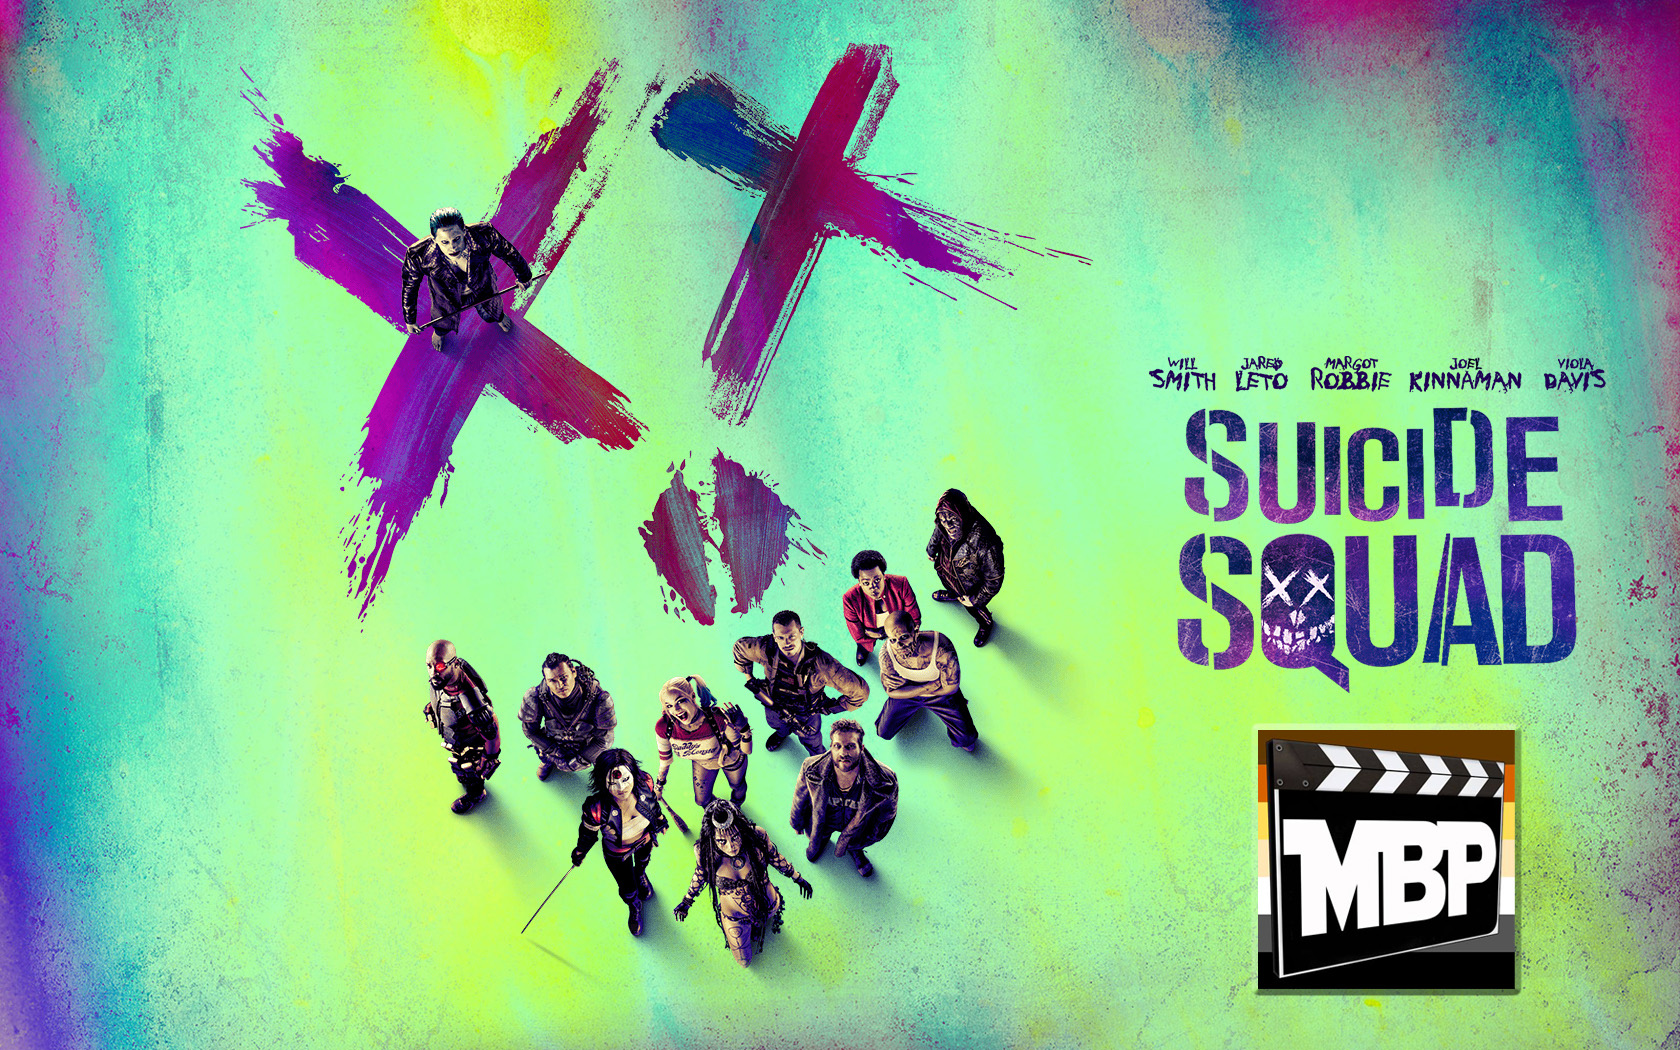 MBP e195 - 'Suicide Squad' (8/19/16)    The latest DC Universe superhero film has been generating all kinds of buzz lately. Is this the booster shot that DC needs? Or is this gang of antiheroes just a bunch of jokers? Tune in to find out! Click through to listen.